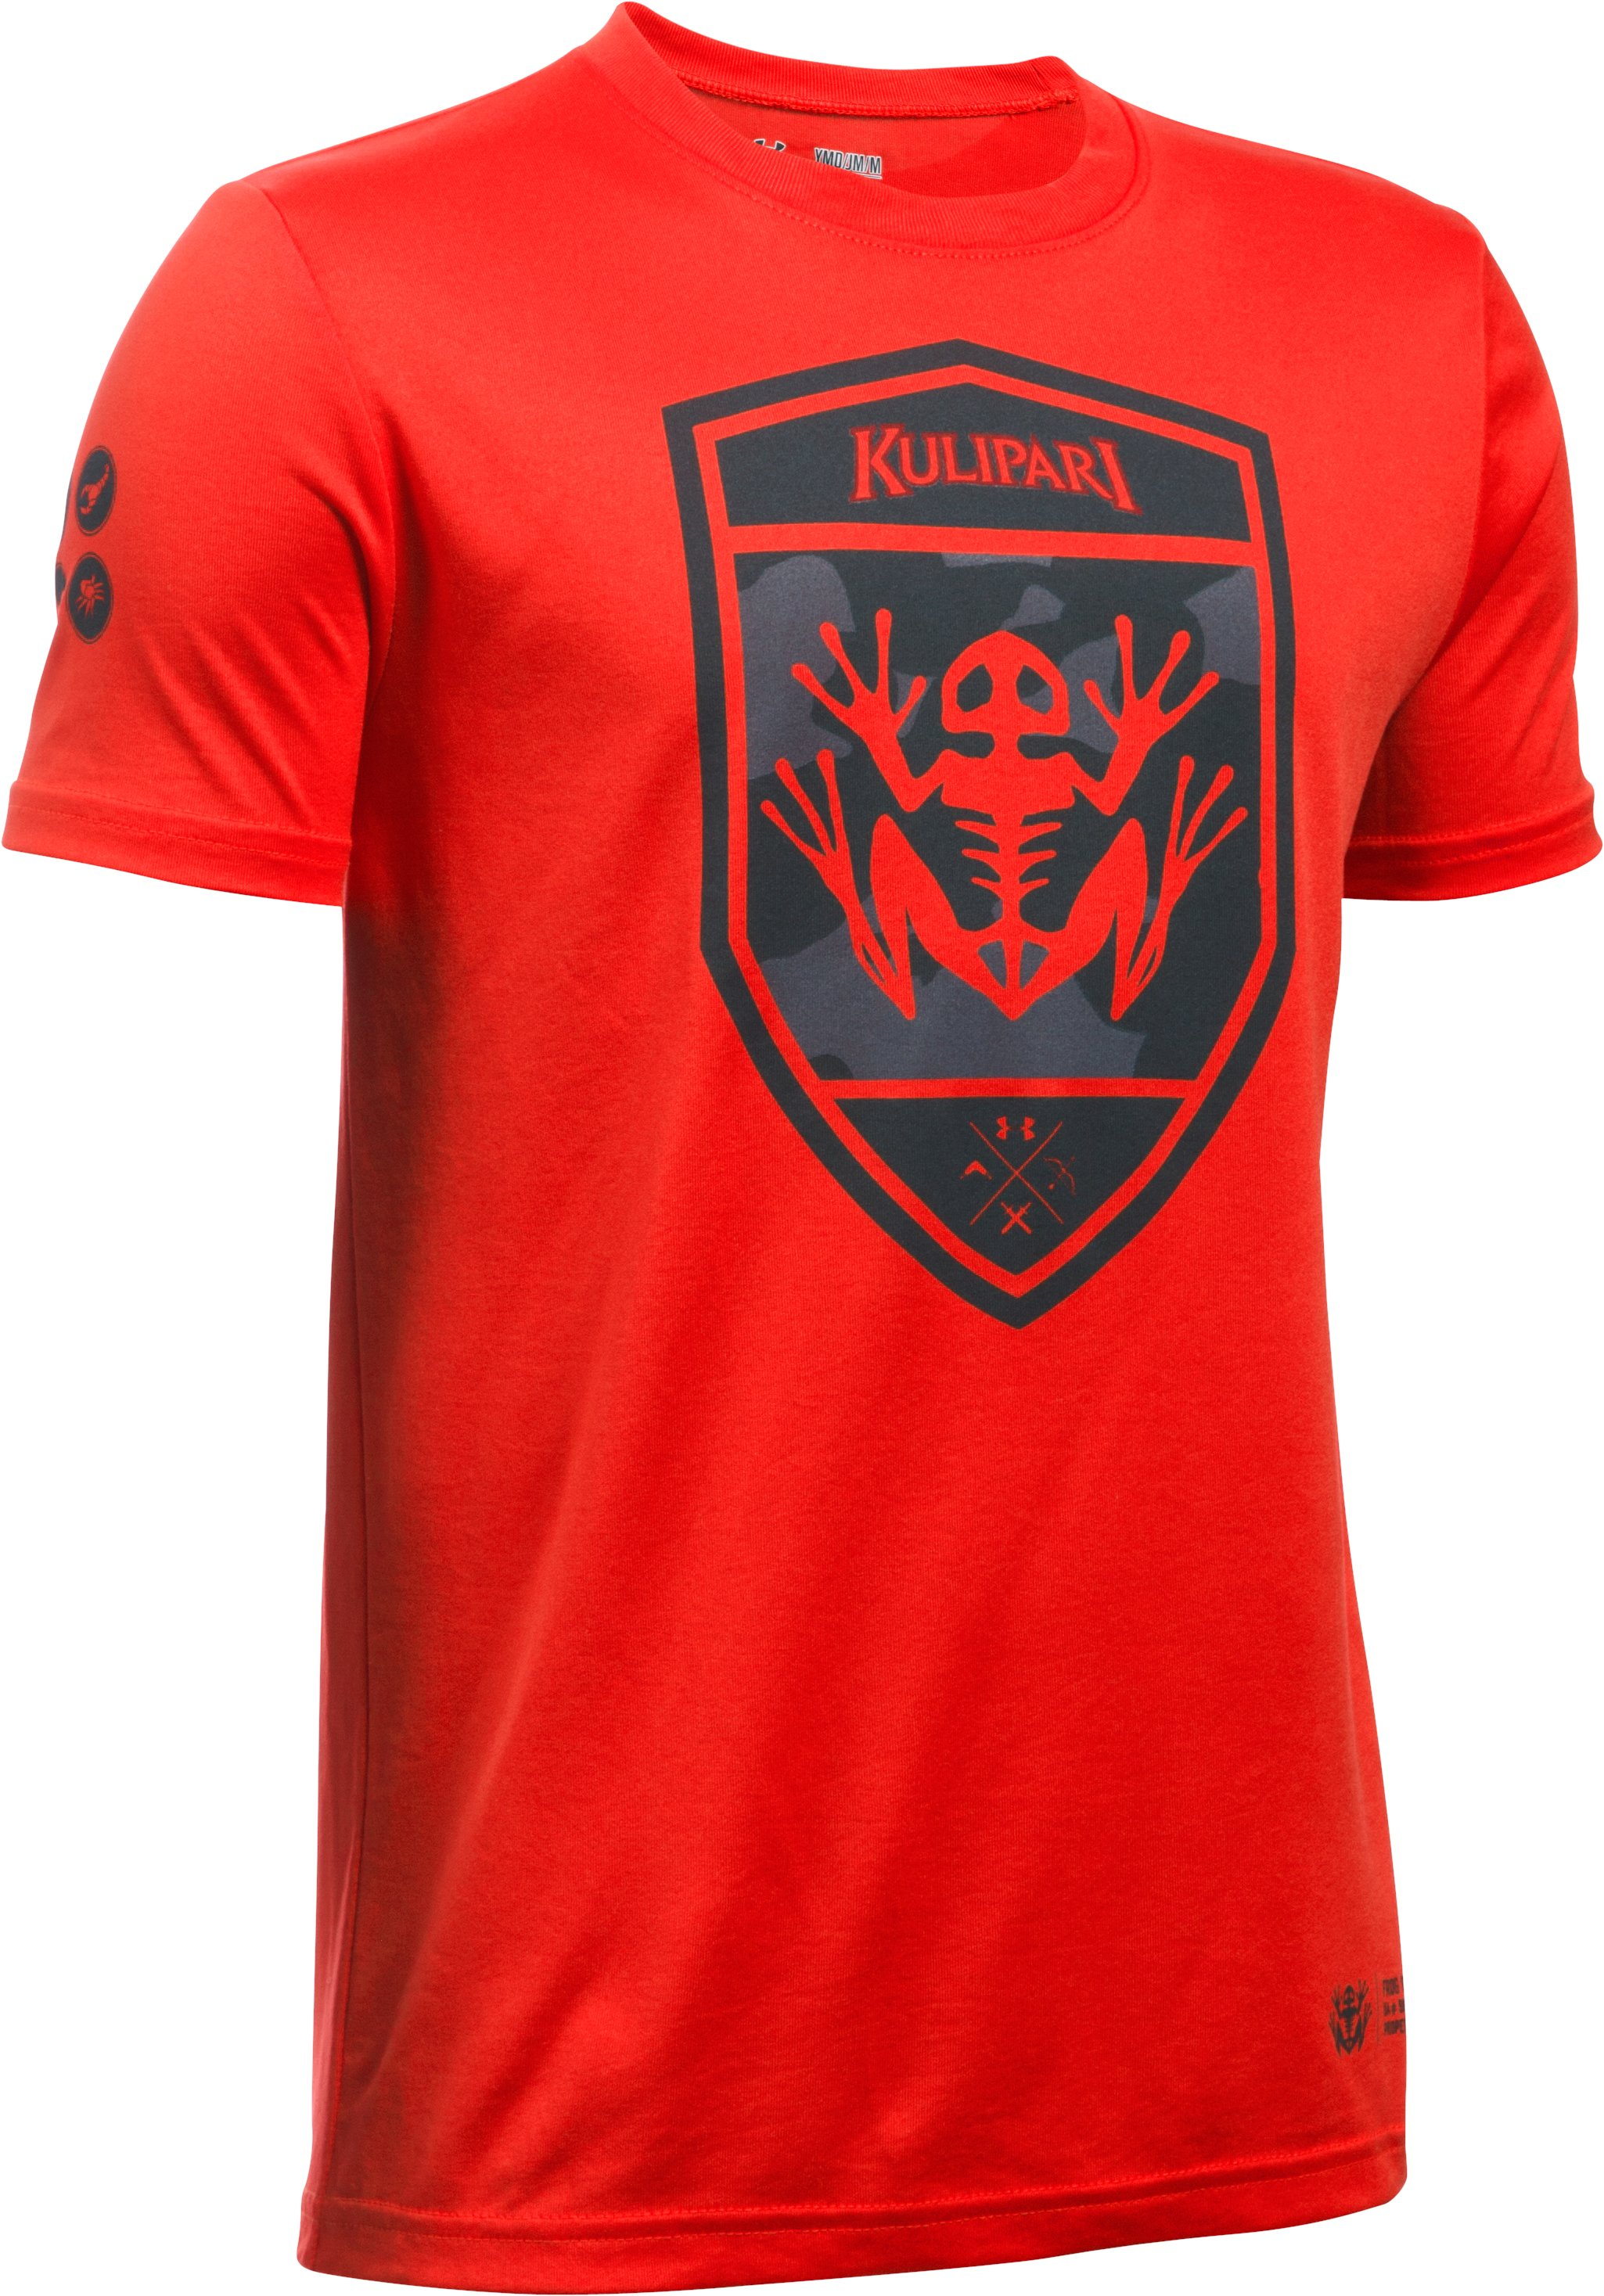 Boys' Kulipari Frog T-Shirt, RISK RED